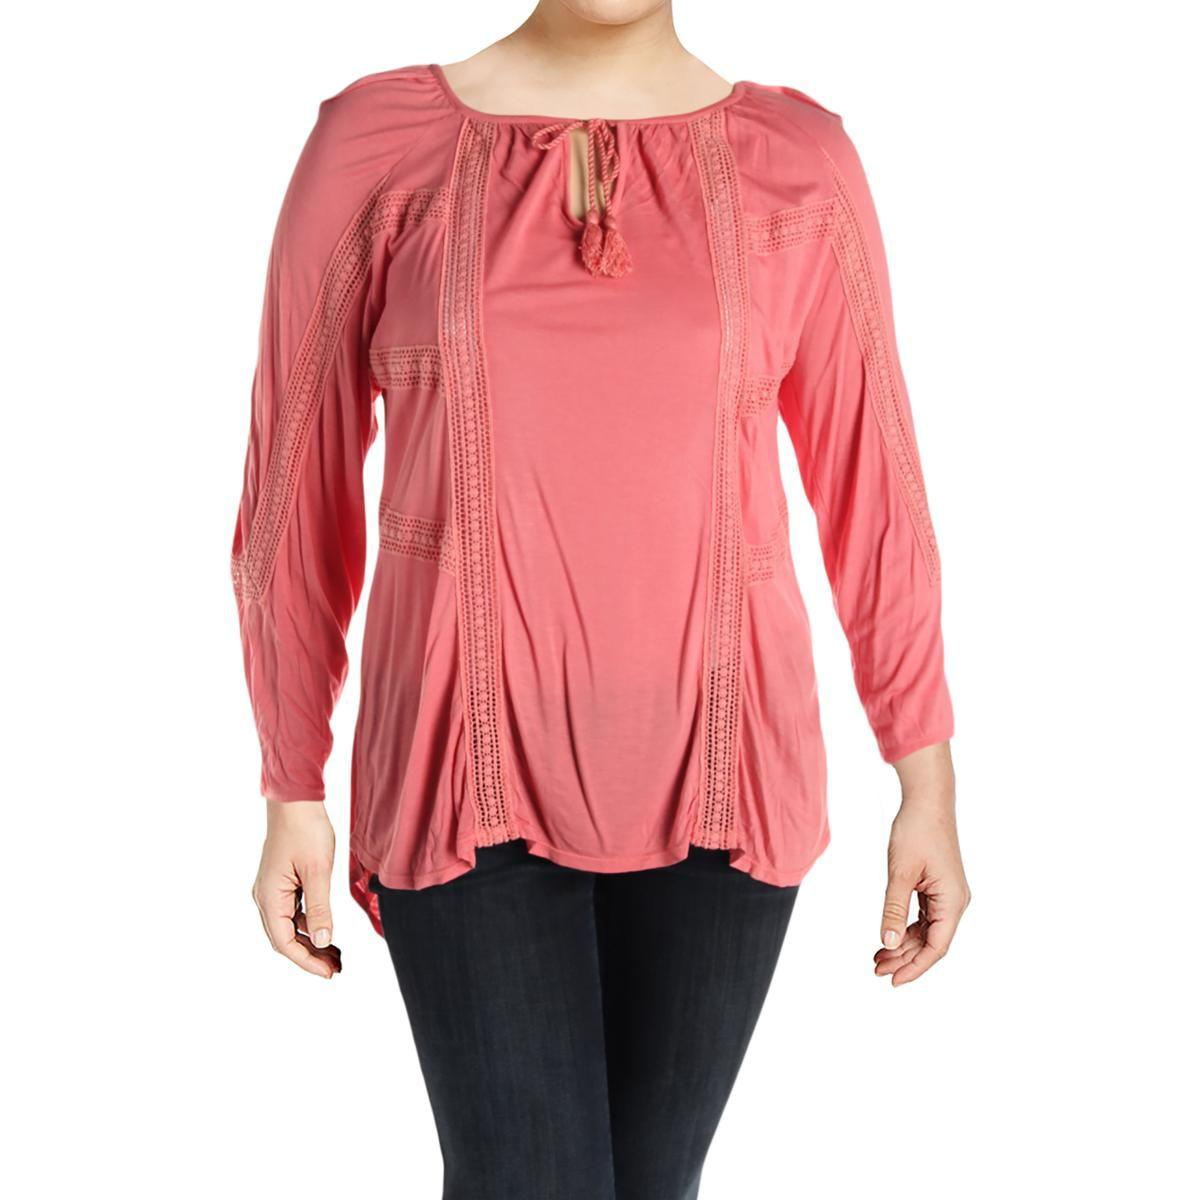 aae792c067512 Lyst - Lucky Brand Womens Plus Lace Inset 3 4 Sleeves Peasant Top in ...